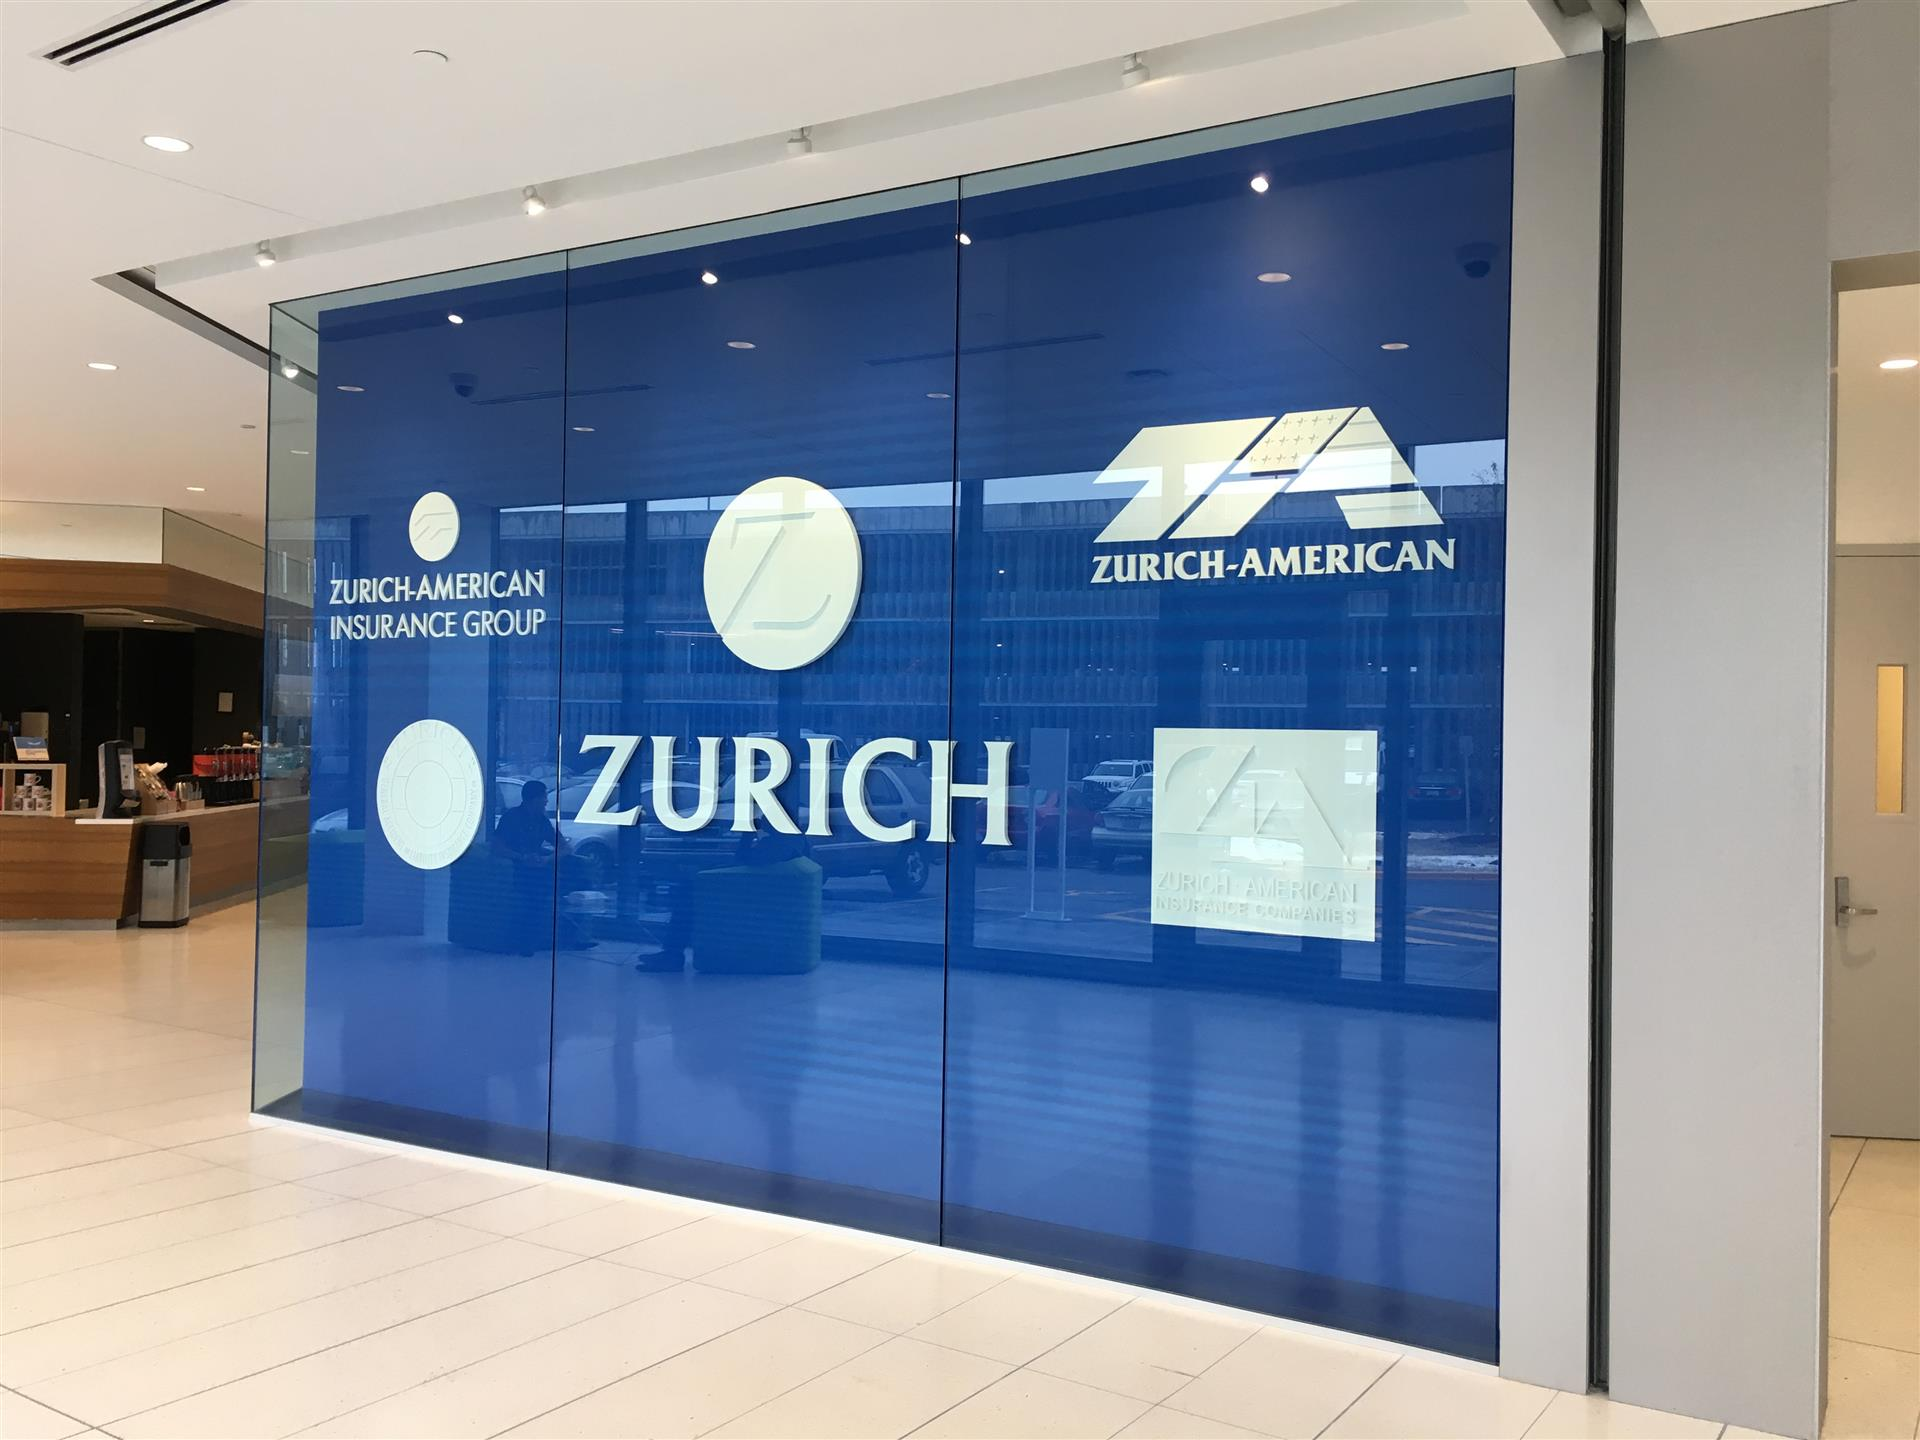 Zurich-American Insurance Group Lobby Sign